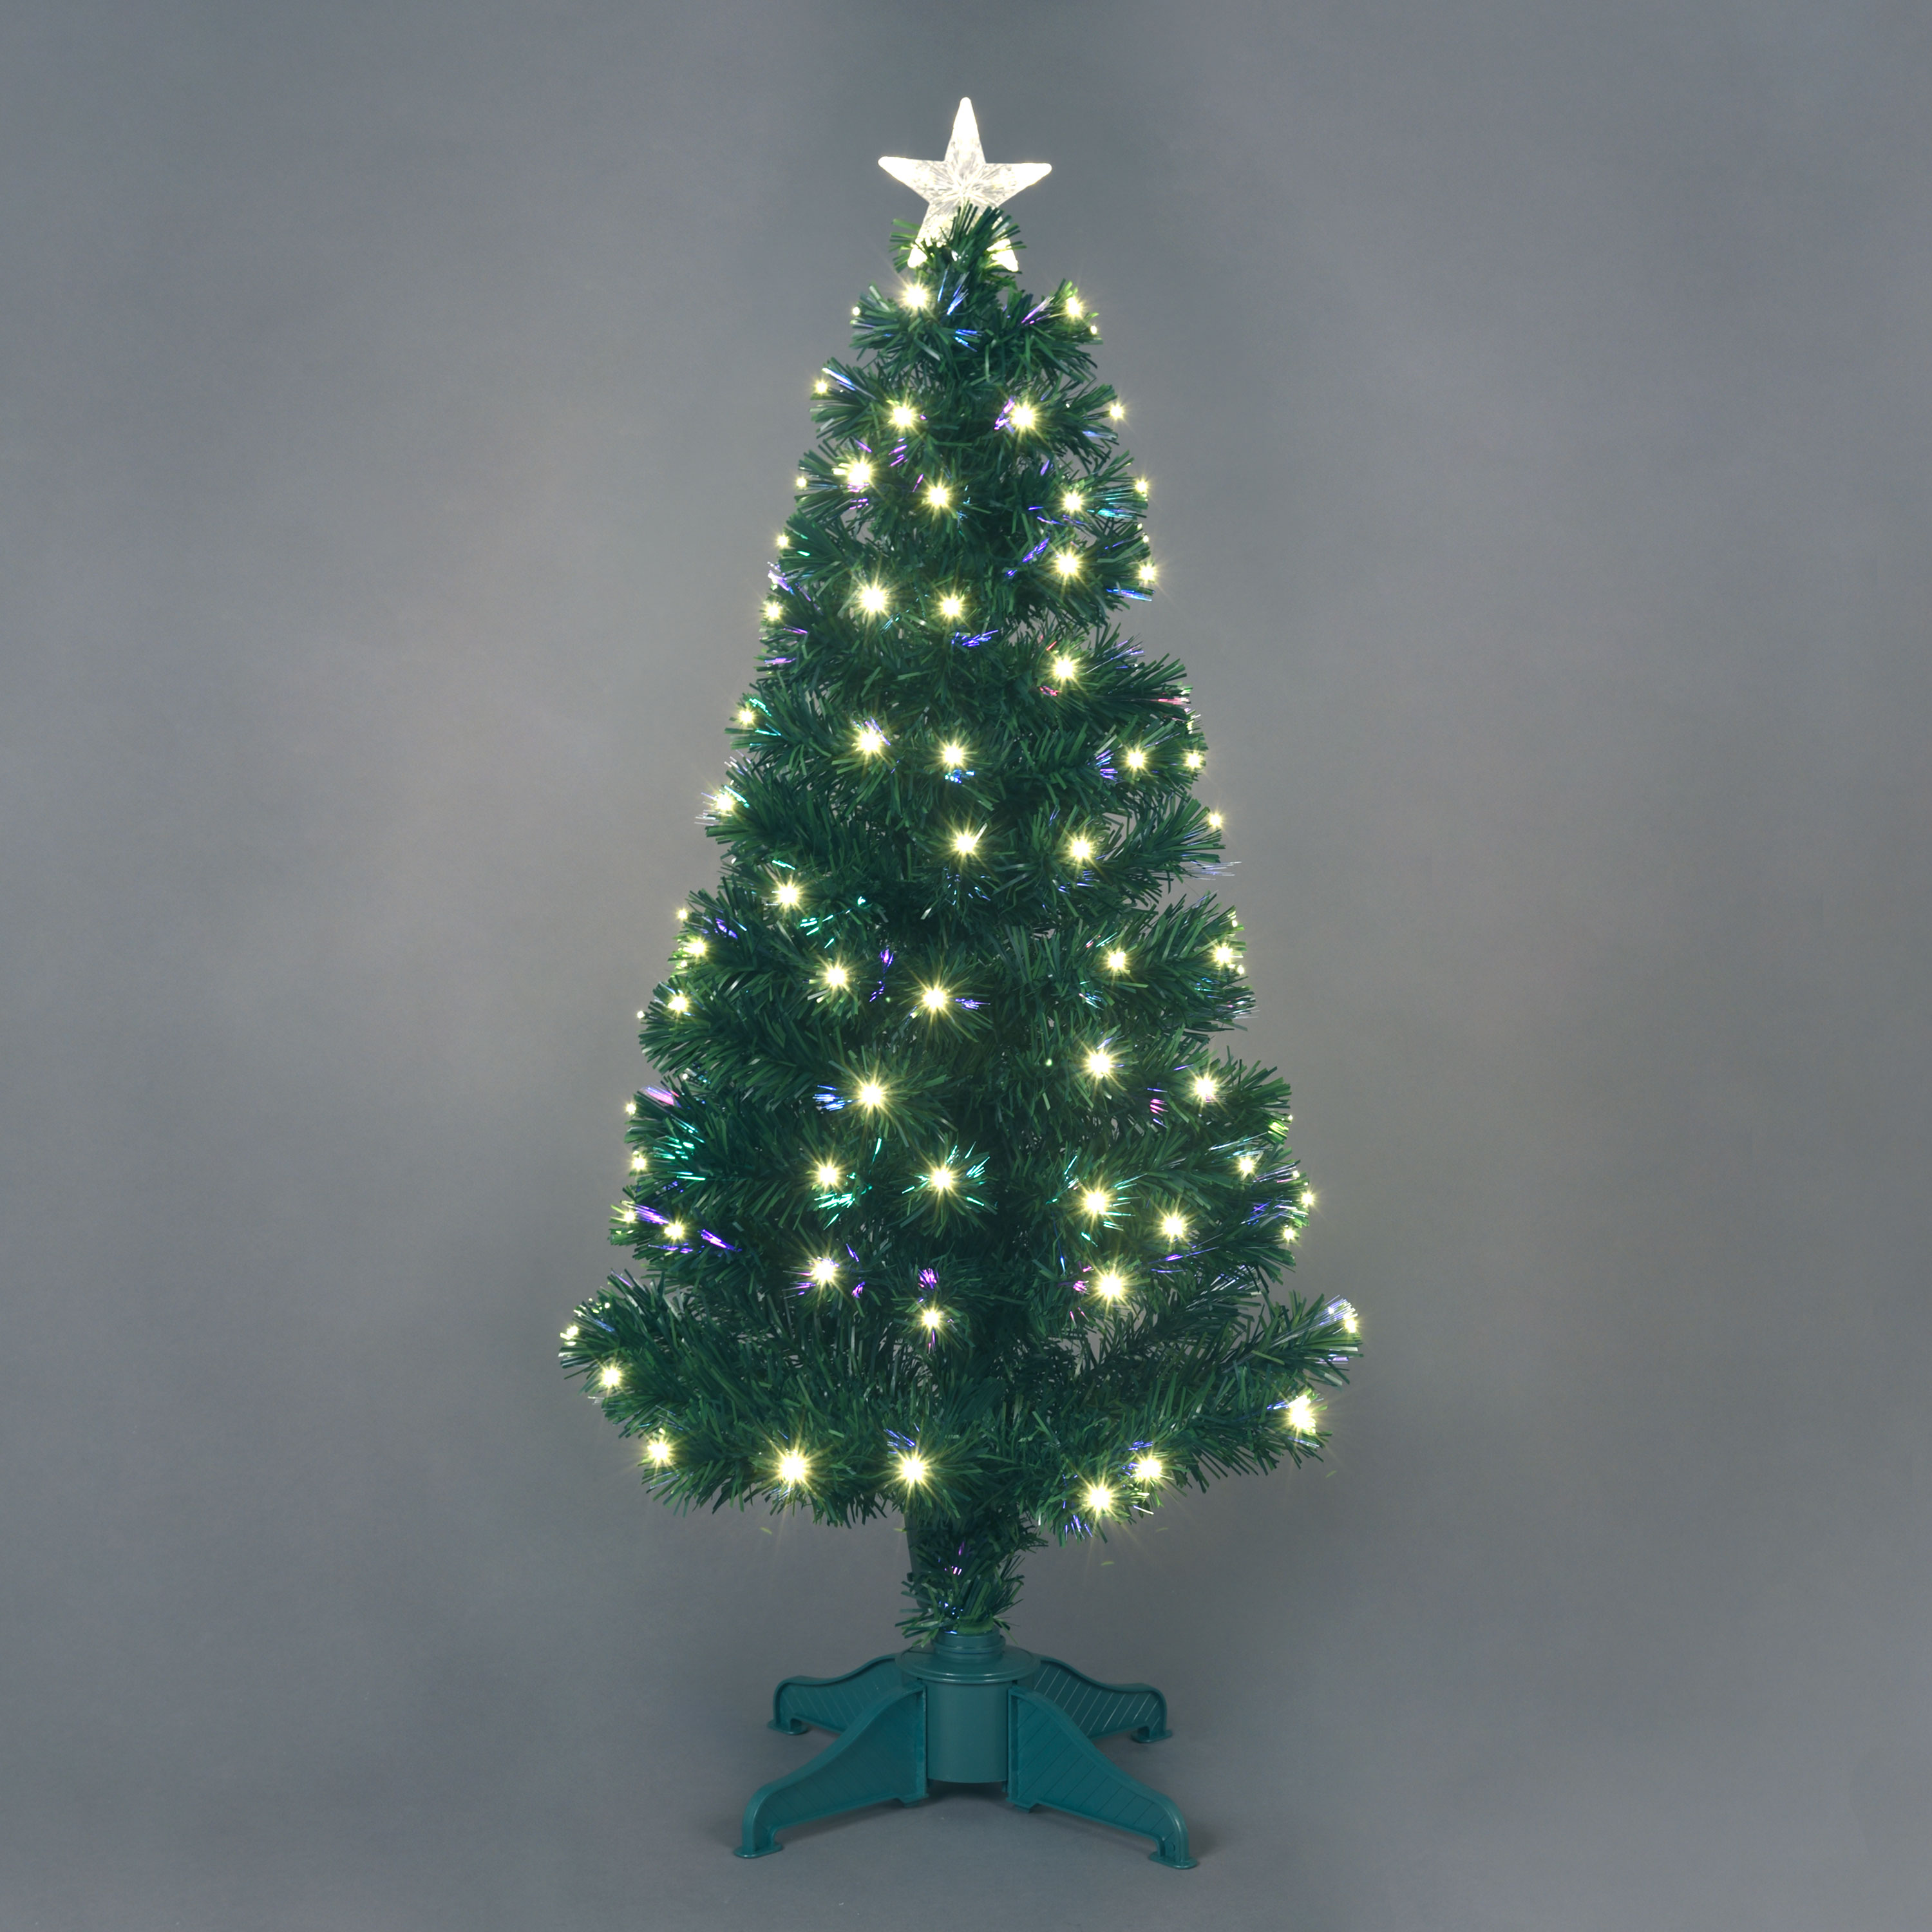 5ft Fibre Optic Saturn Christmas Tree with Ice White LEDs